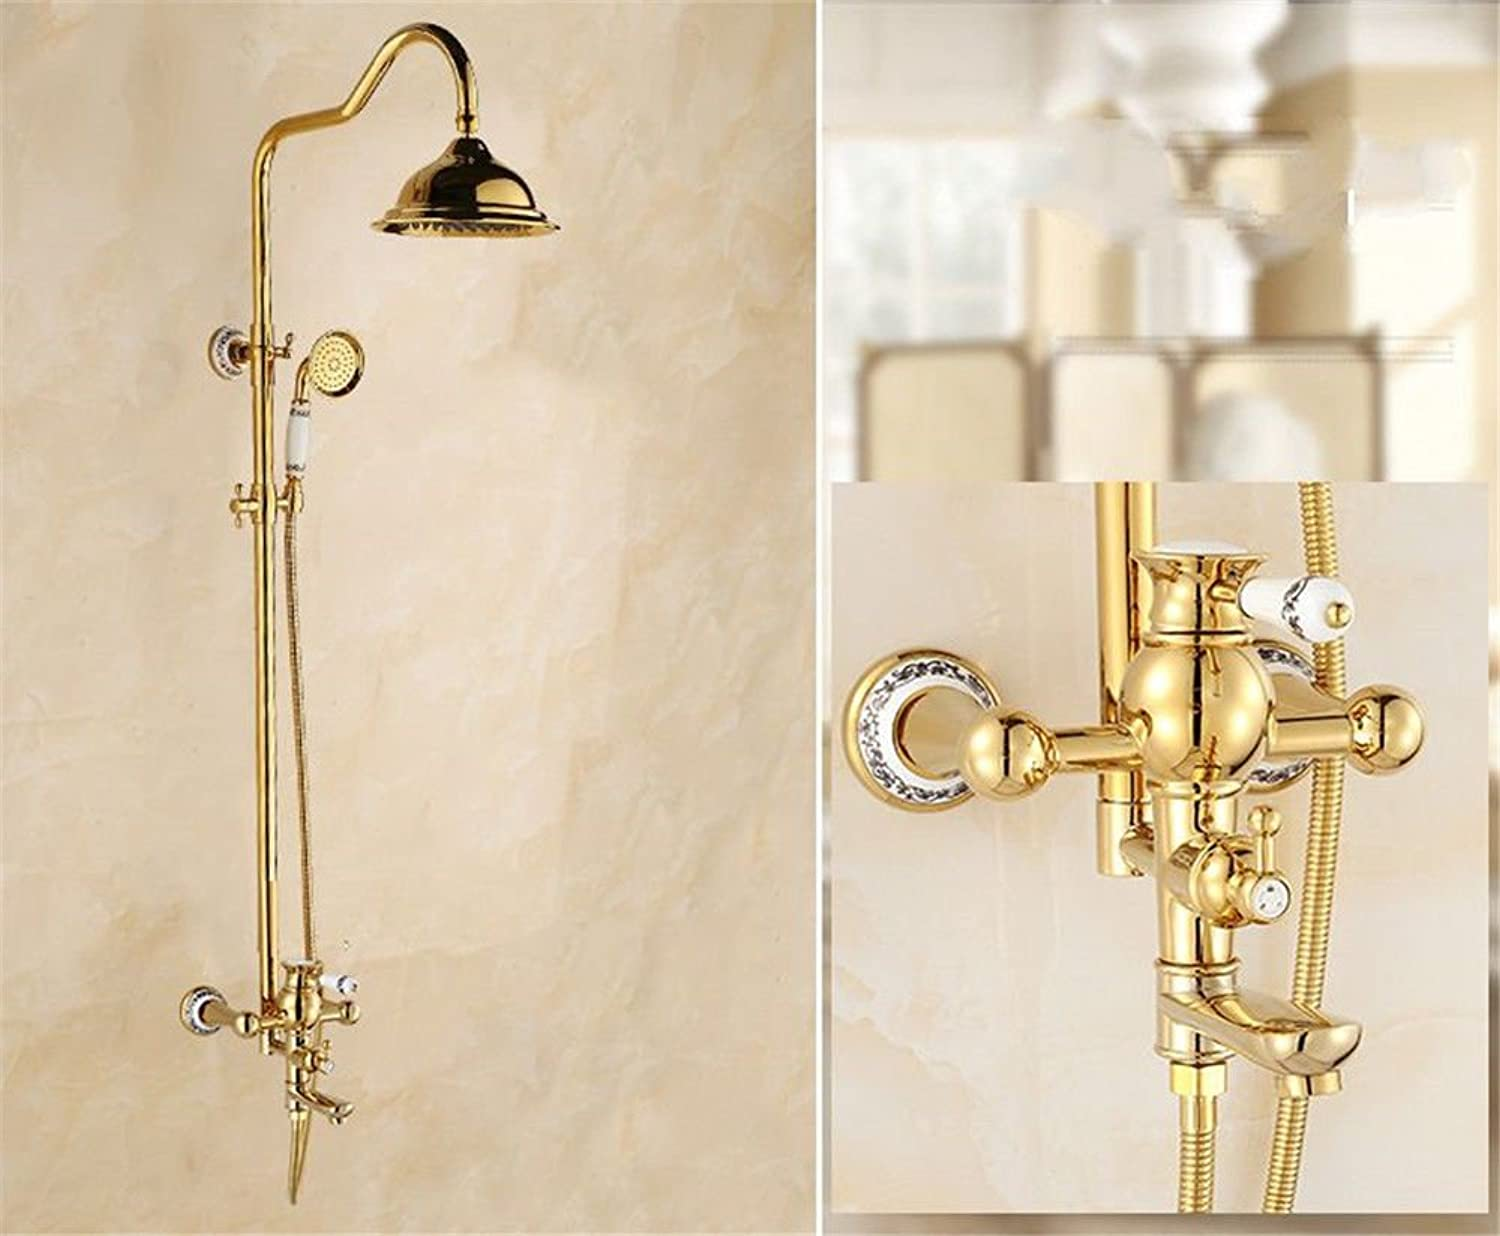 ETERNAL QUALITY Bathroom Sink Basin Tap Brass Mixer Tap Washroom Mixer Faucet The gold bath shower faucet shower set wall mounted the brass shower head and hand held show